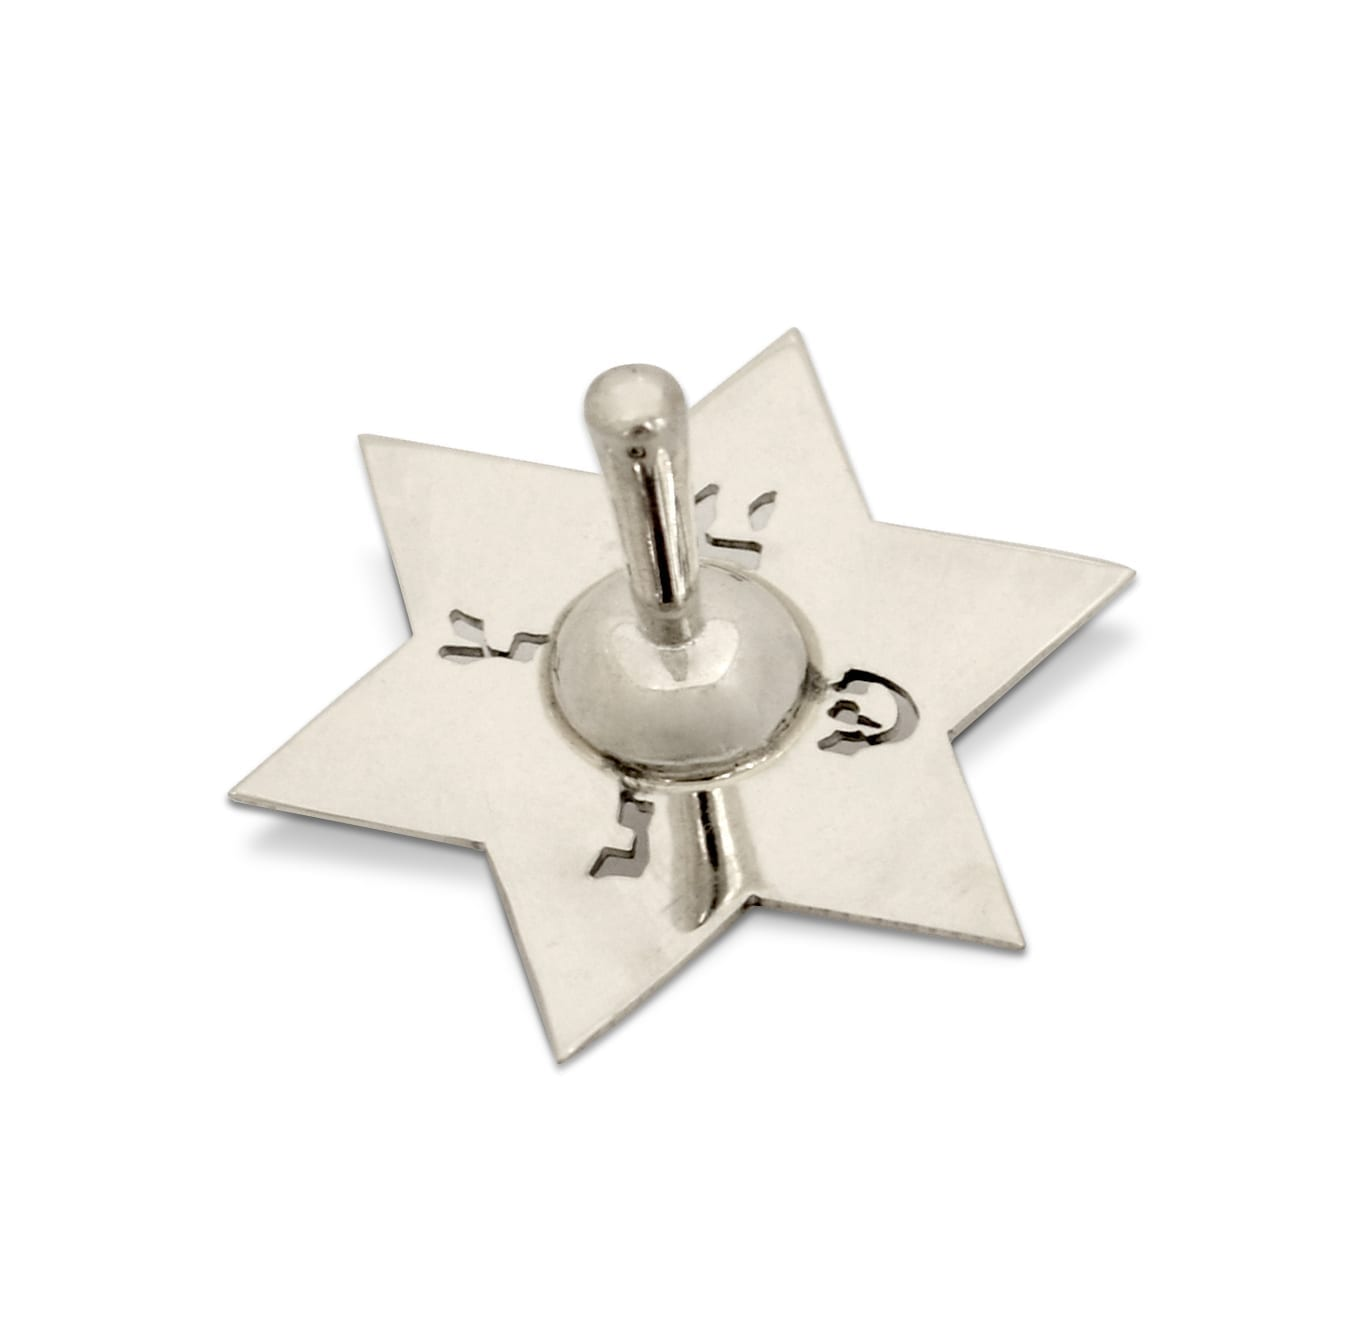 Sterling silver dreidel, thin, star shaped design. Hannukah Judaica gifts made in Israel